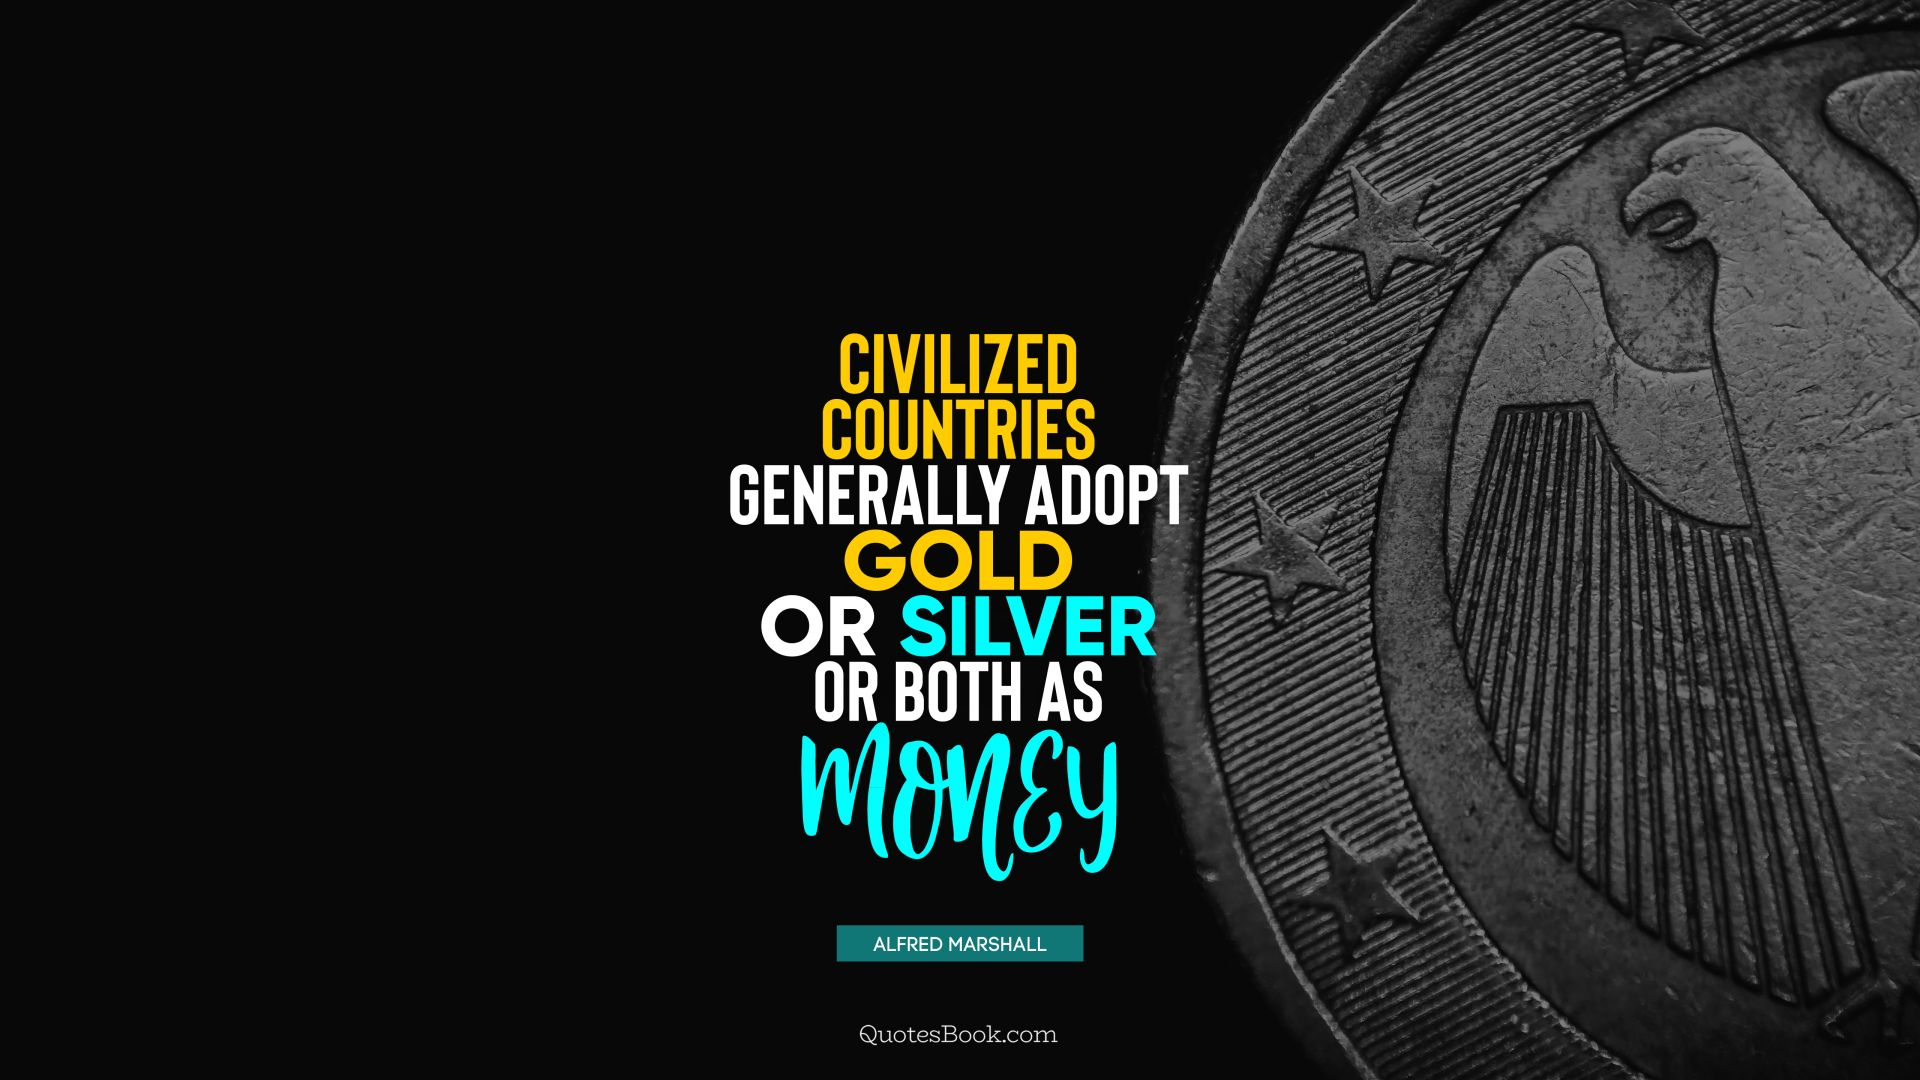 Civilized countries generally adopt gold or silver or both as money. - Quote by Alfred Marshall